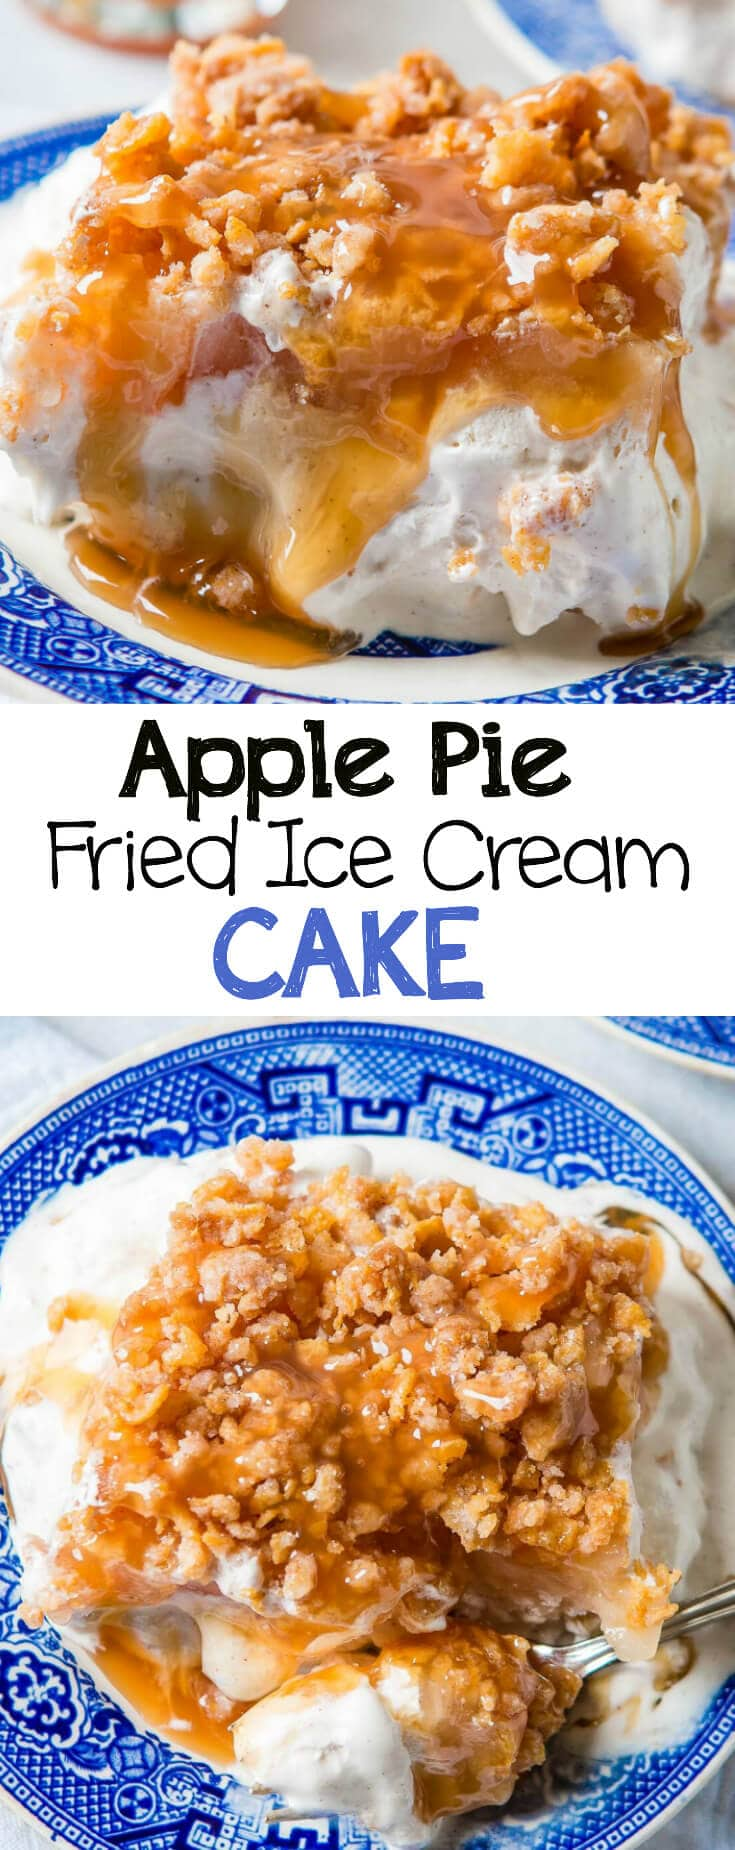 There's nothing that says fall like apple recipes. Our family's apple pie fried ice cream cake is the perfect way to move into fall!